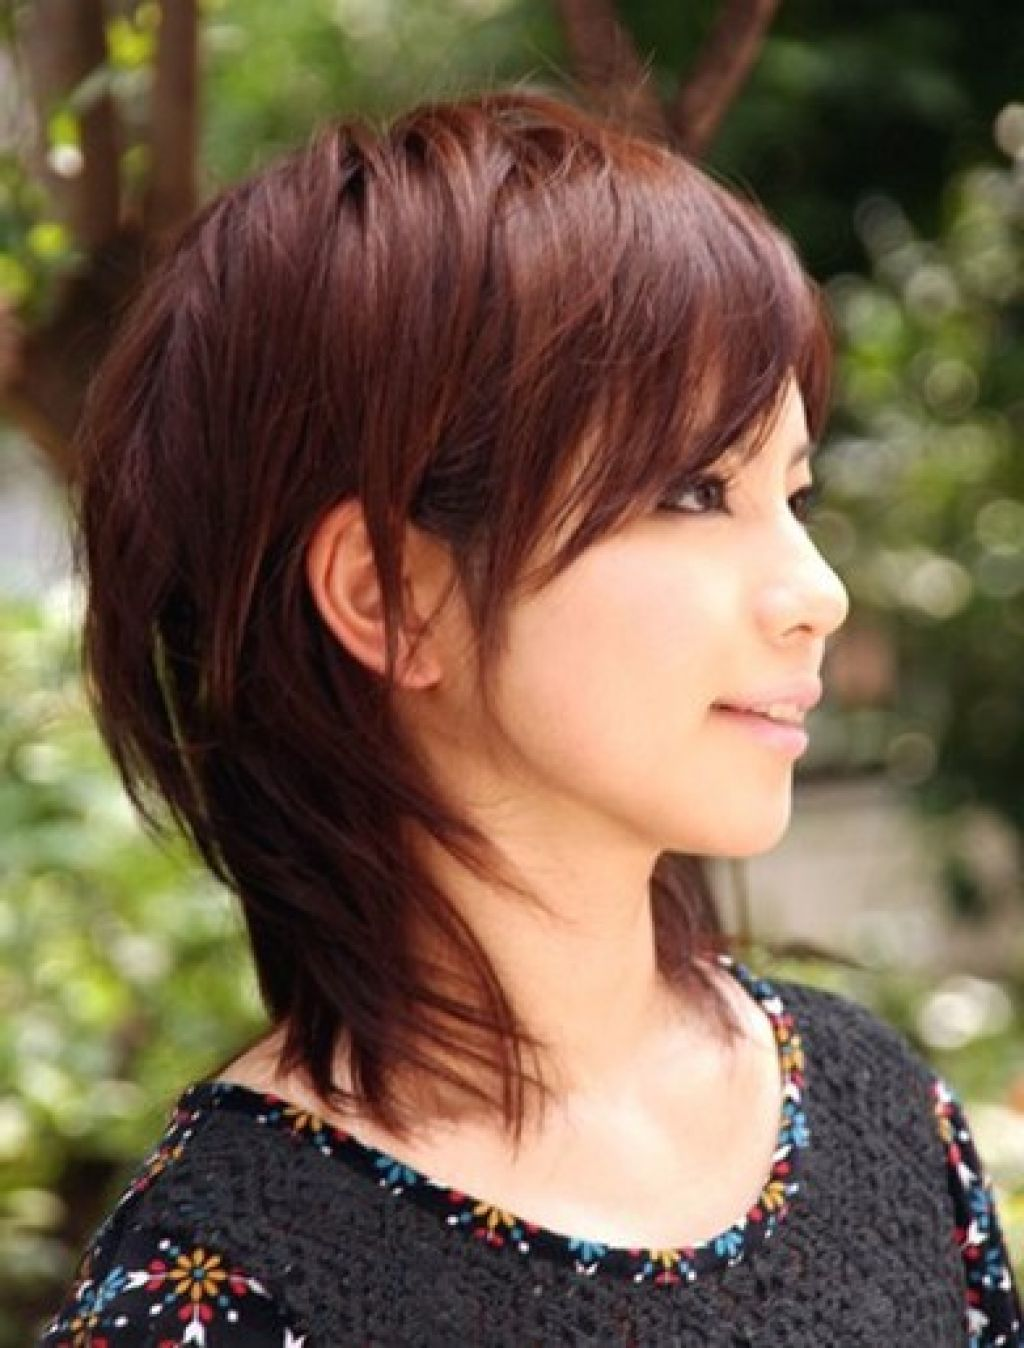 Japanese Style Haircuts Asian Women Hairstyles 2019